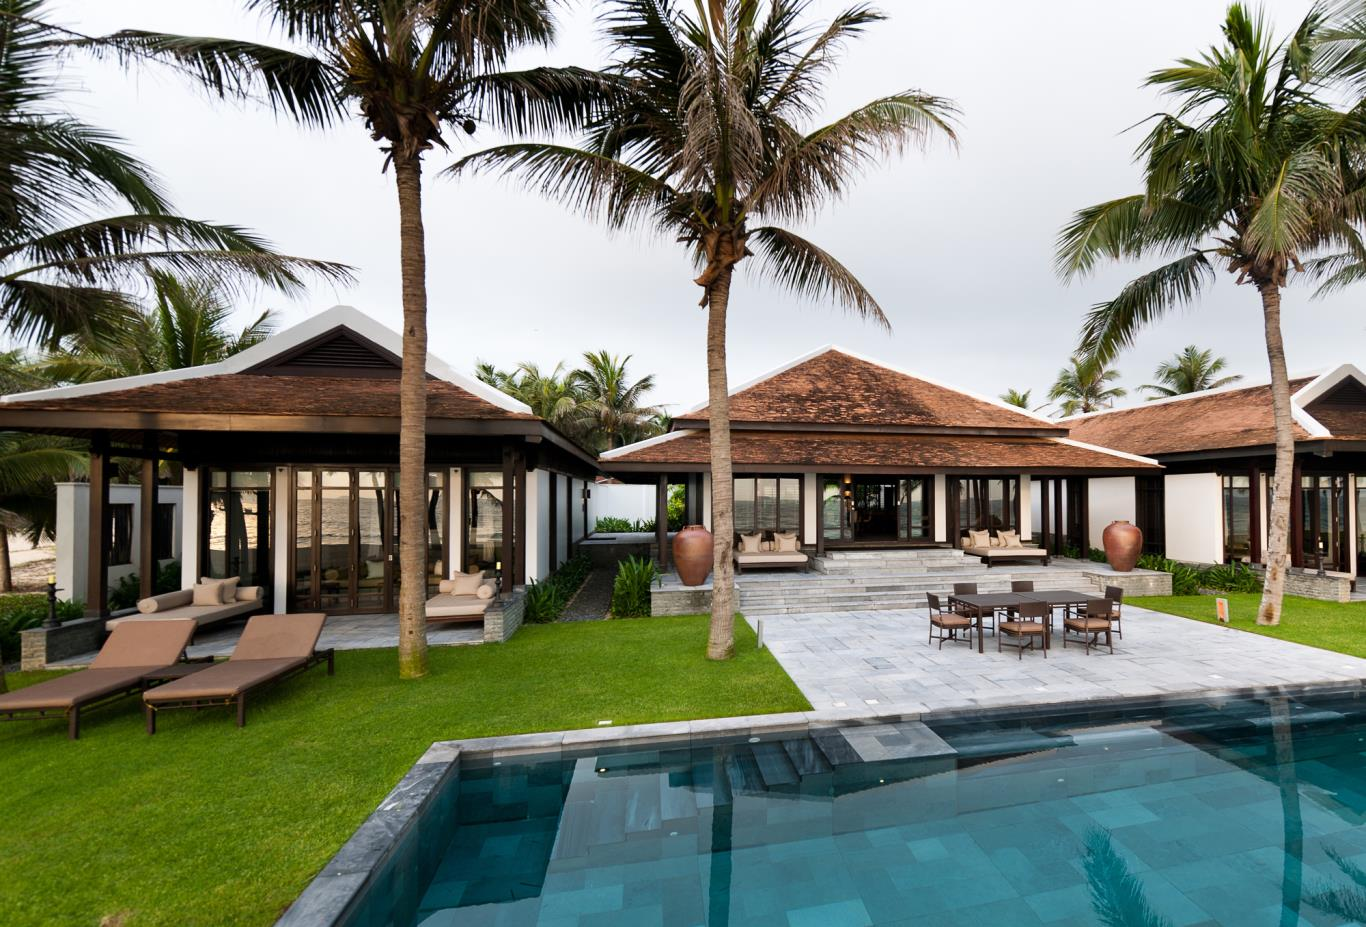 Two Bedroom Pool Villa exterior